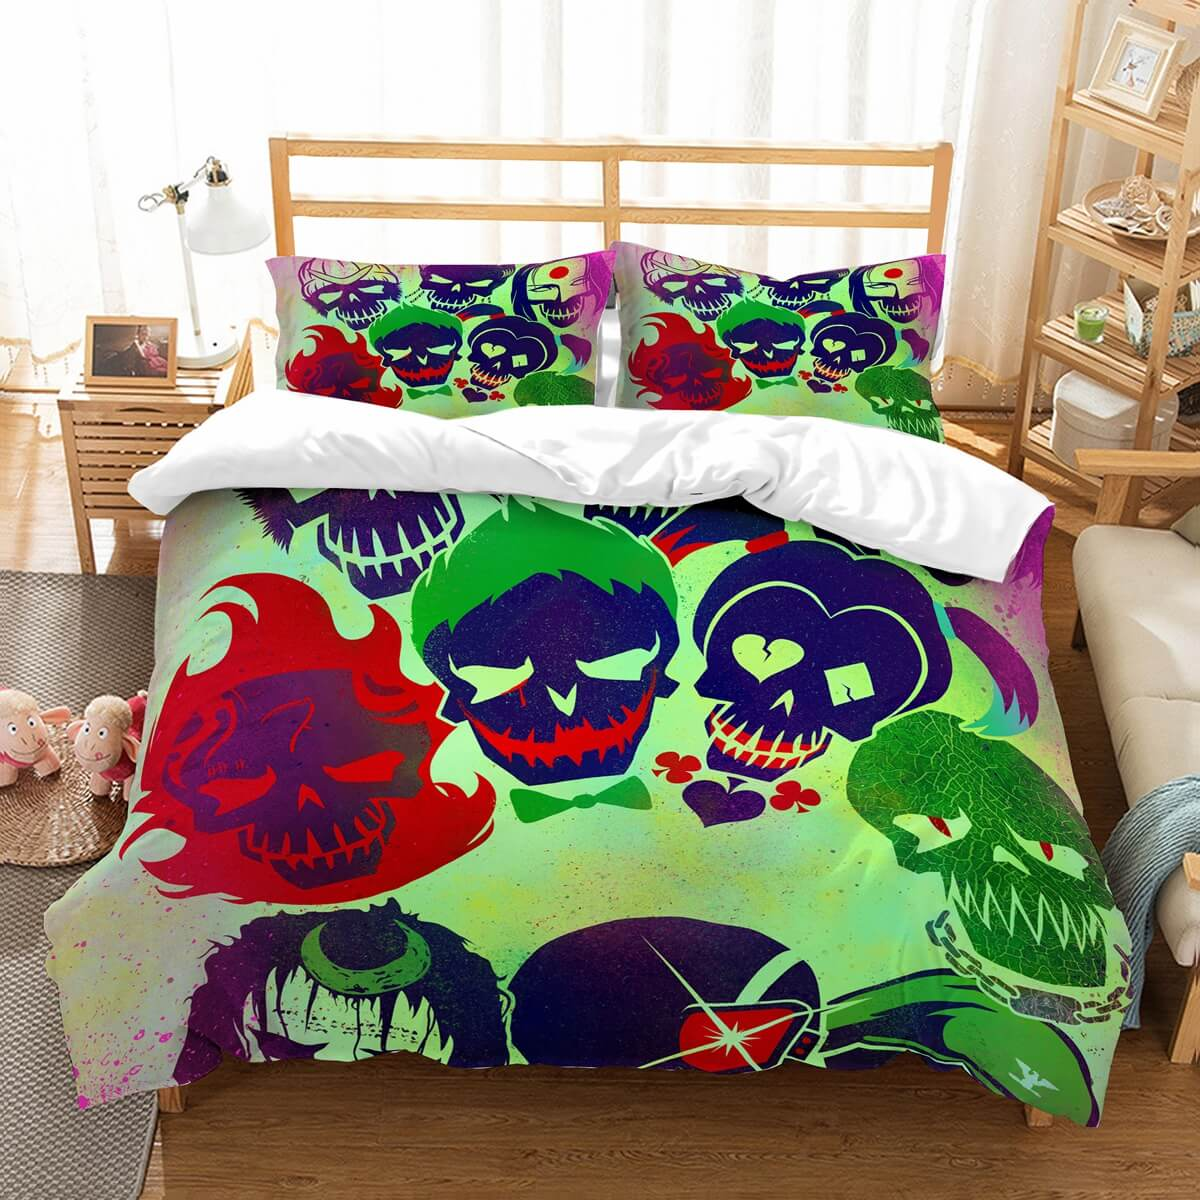 3D Customize Suicide Squad Bedding Set Duvet Cover Set Bedroom Set Bedlinen